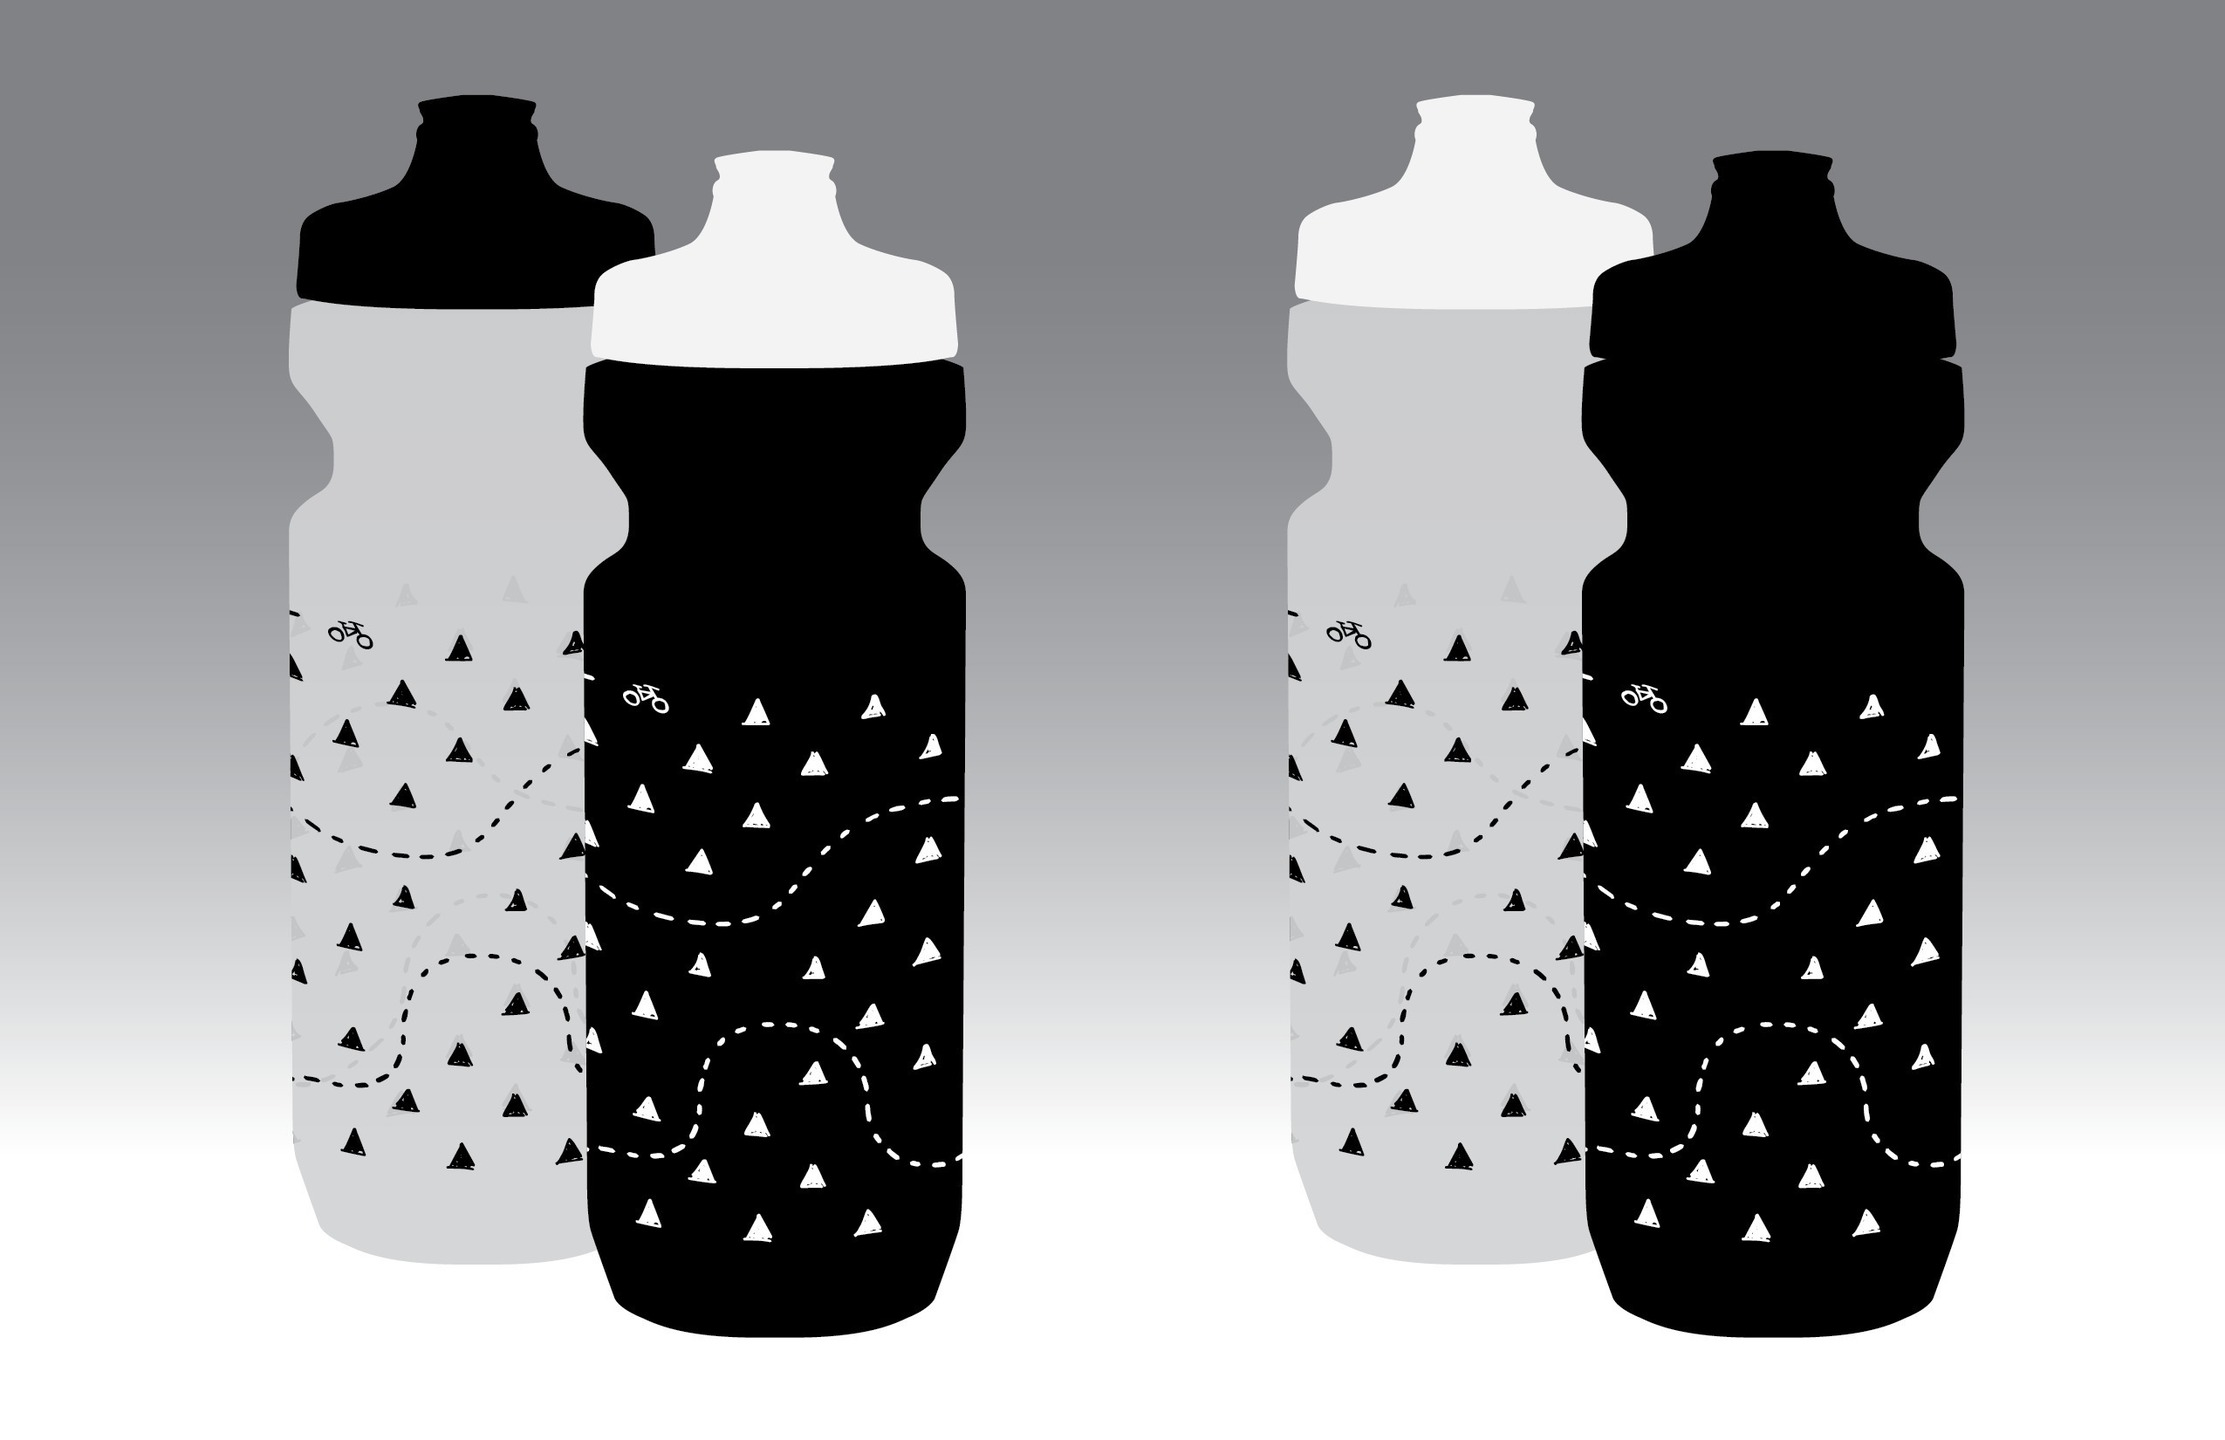 mtn_bottle_2-08.png